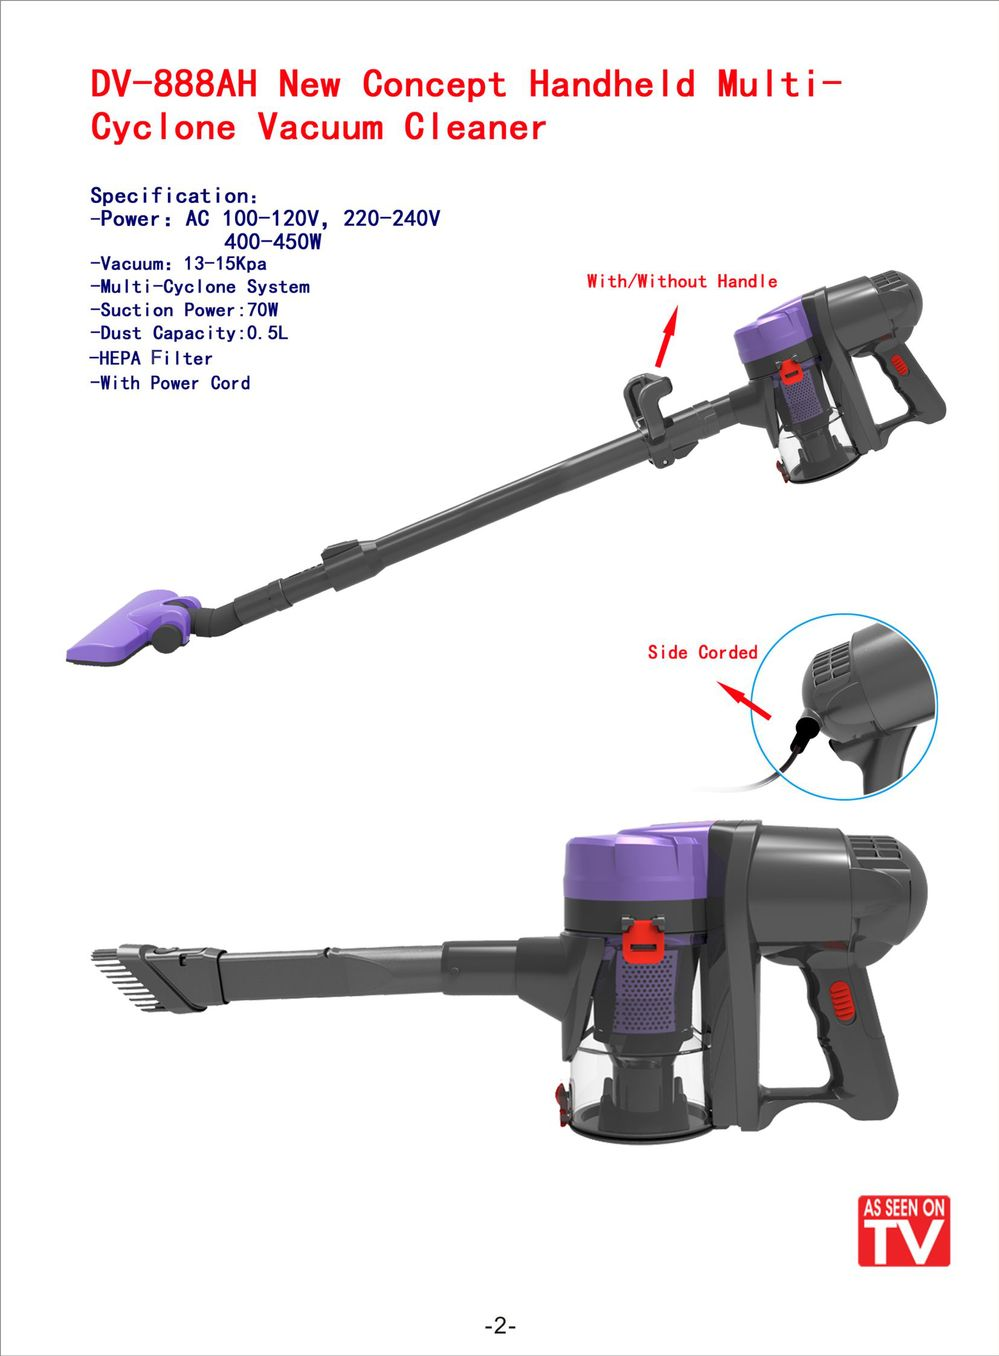 Corded Hand Stick Vacuum Cleaner AS SEEN ON TV Multi Cyclone Vacuum Cleaner